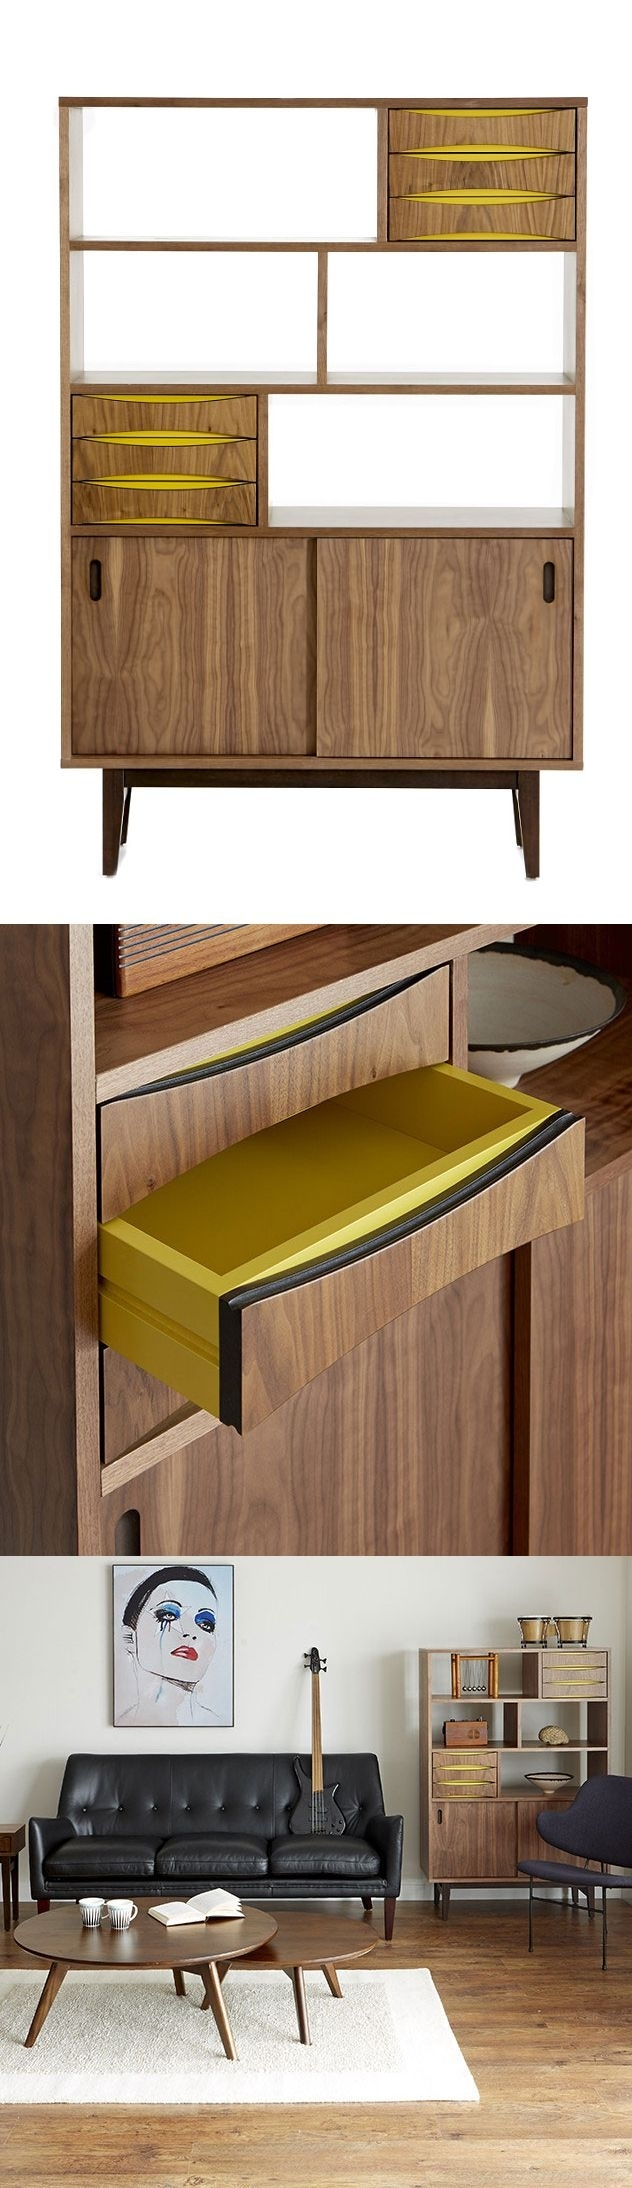 111 Best Holzdesign Images On Pinterest | Wood, Woodworking And Inside Burnt Tannin 4 Door Sideboards (Gallery 8 of 30)